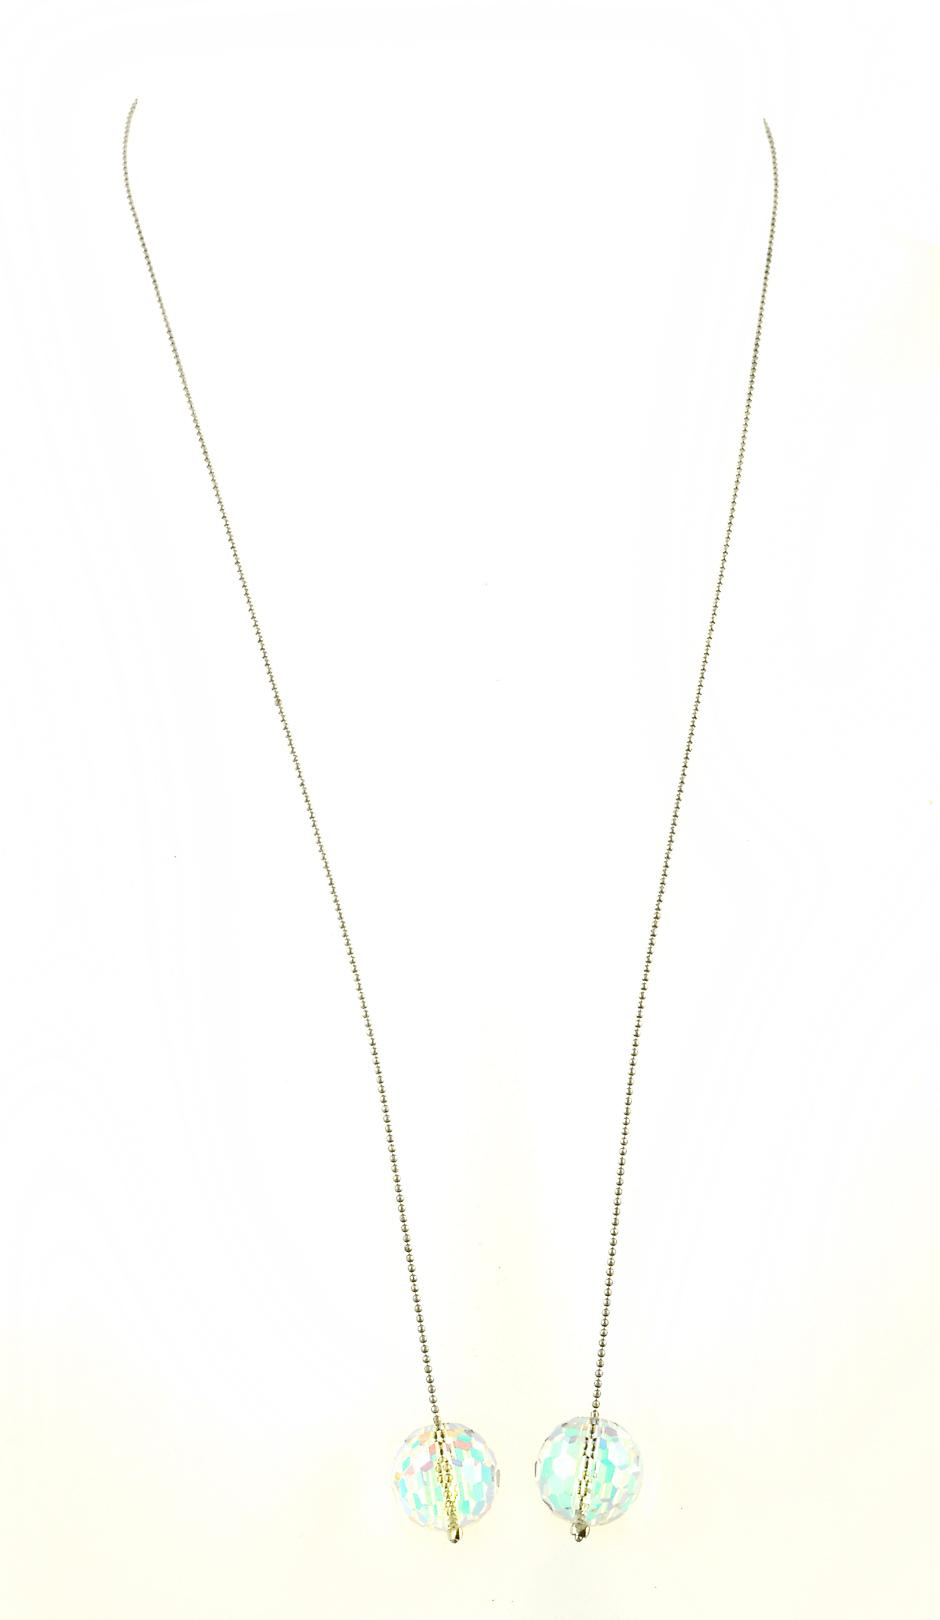 Waooh - jewelry - WJ0312 - necklace along with Pierre Swarovski white transparent - chain silver